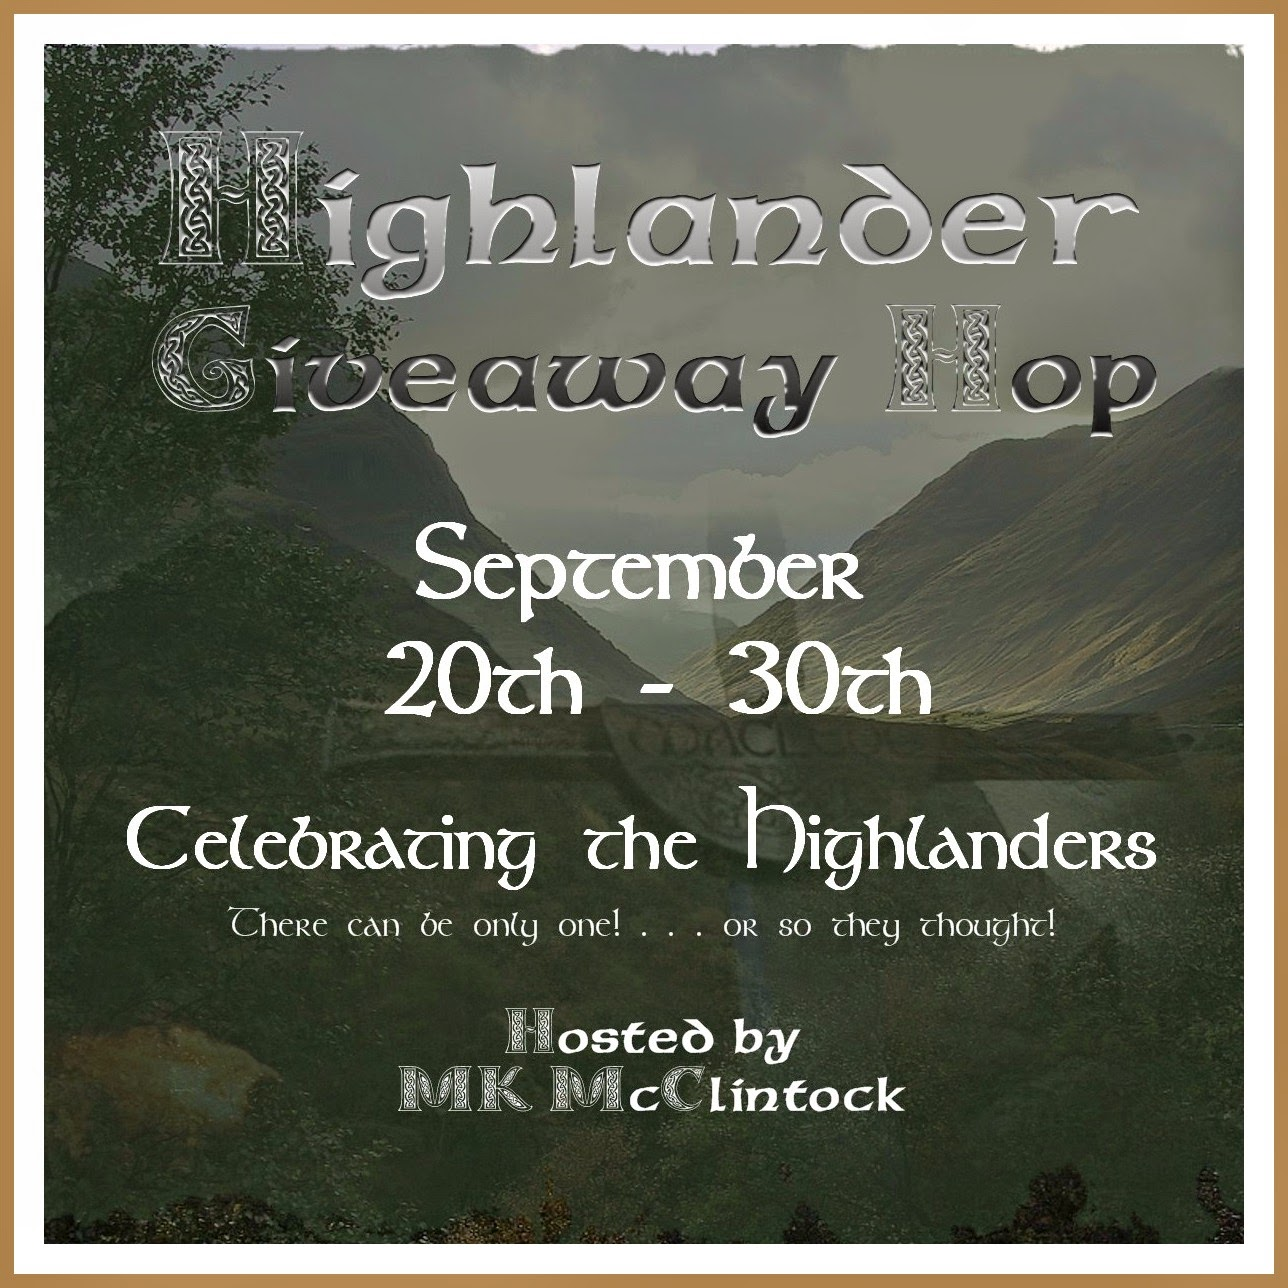 http://romancewithabook.com/2014/09/third-annual-highlander-giveaway-hop.html